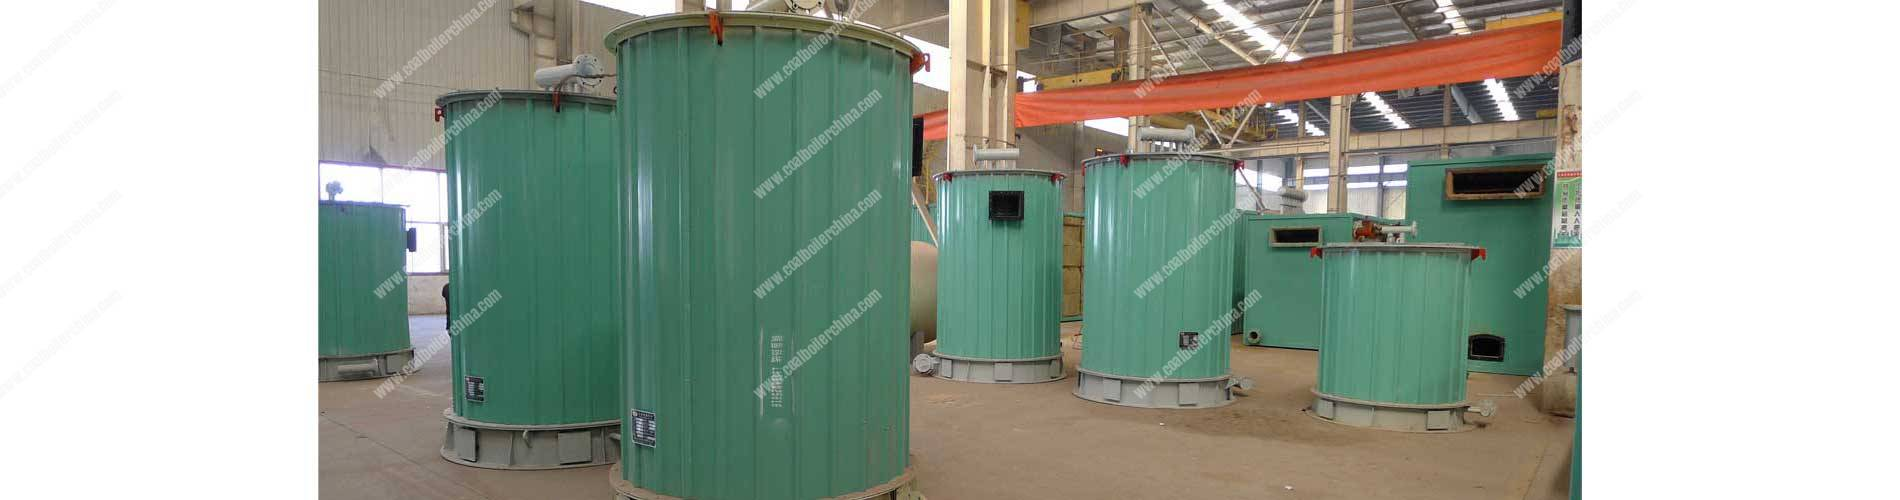 YGL Coal Fired Thermal Oil Boilers